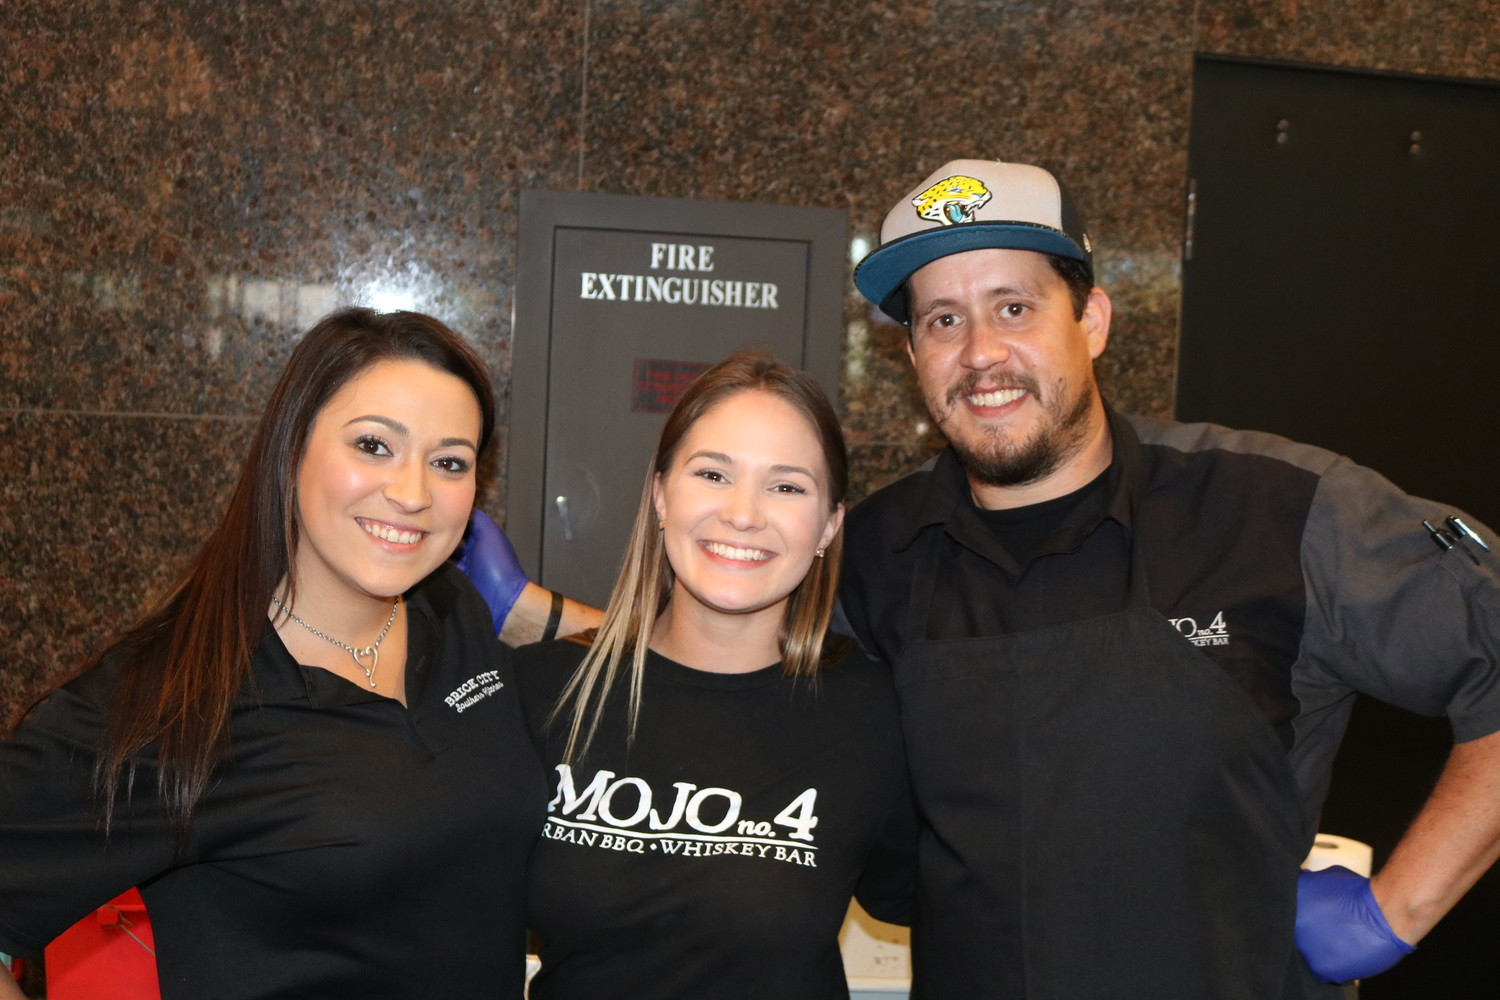 Alex Dooley, Dana Pederson and Daniel Dorancricchio of MOJO BBQ